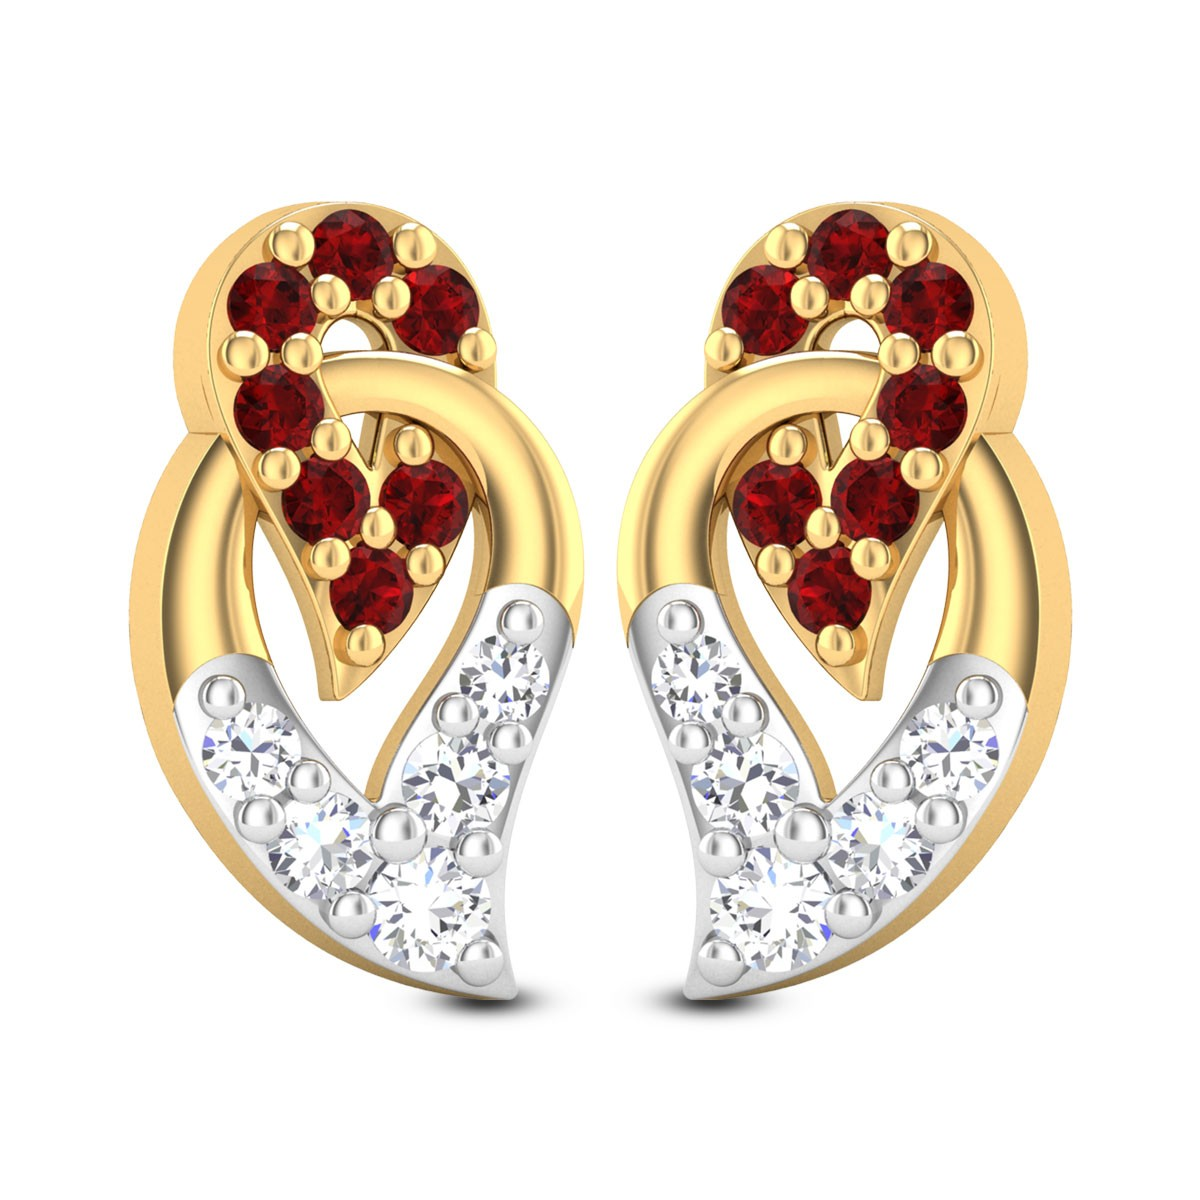 Kinds Of Earrings Collection